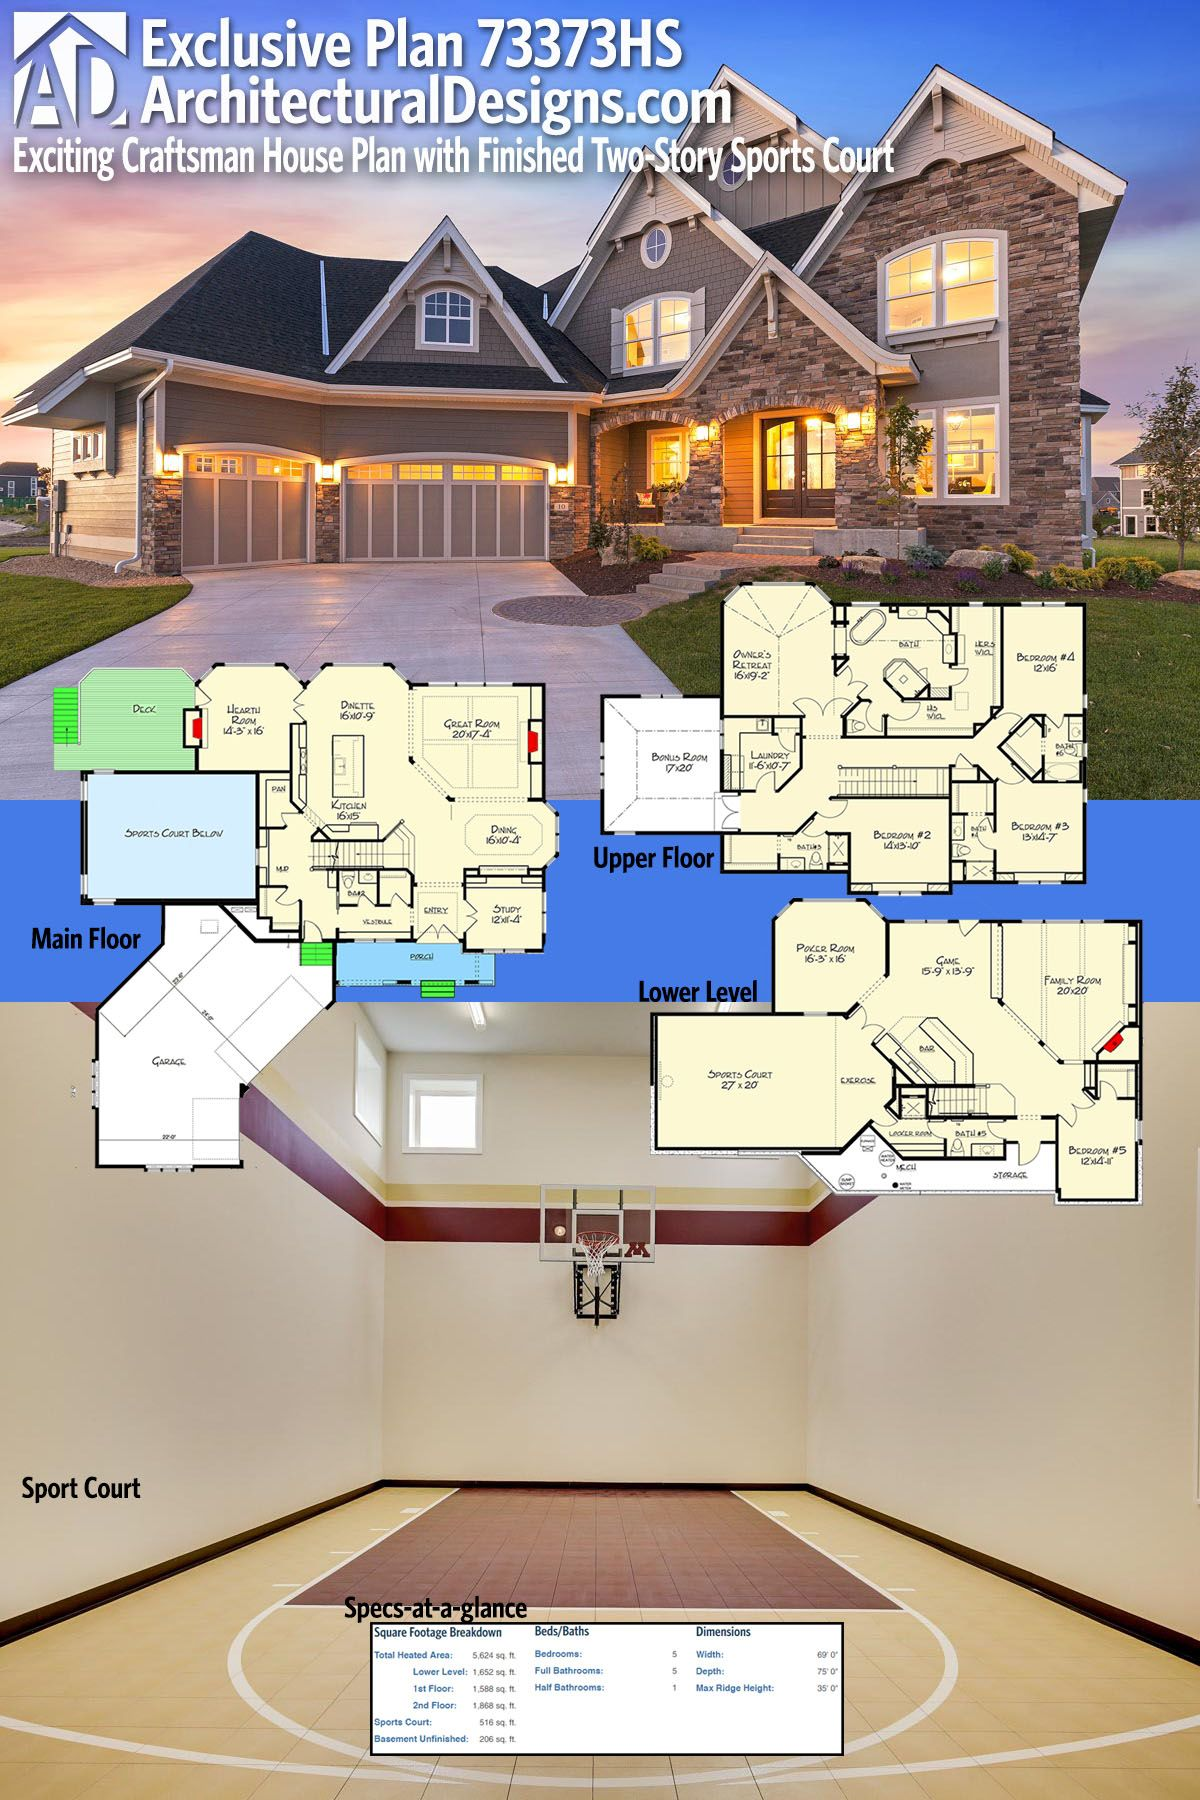 Introducing Architectural Designs Exclusive House Plan 73373HS